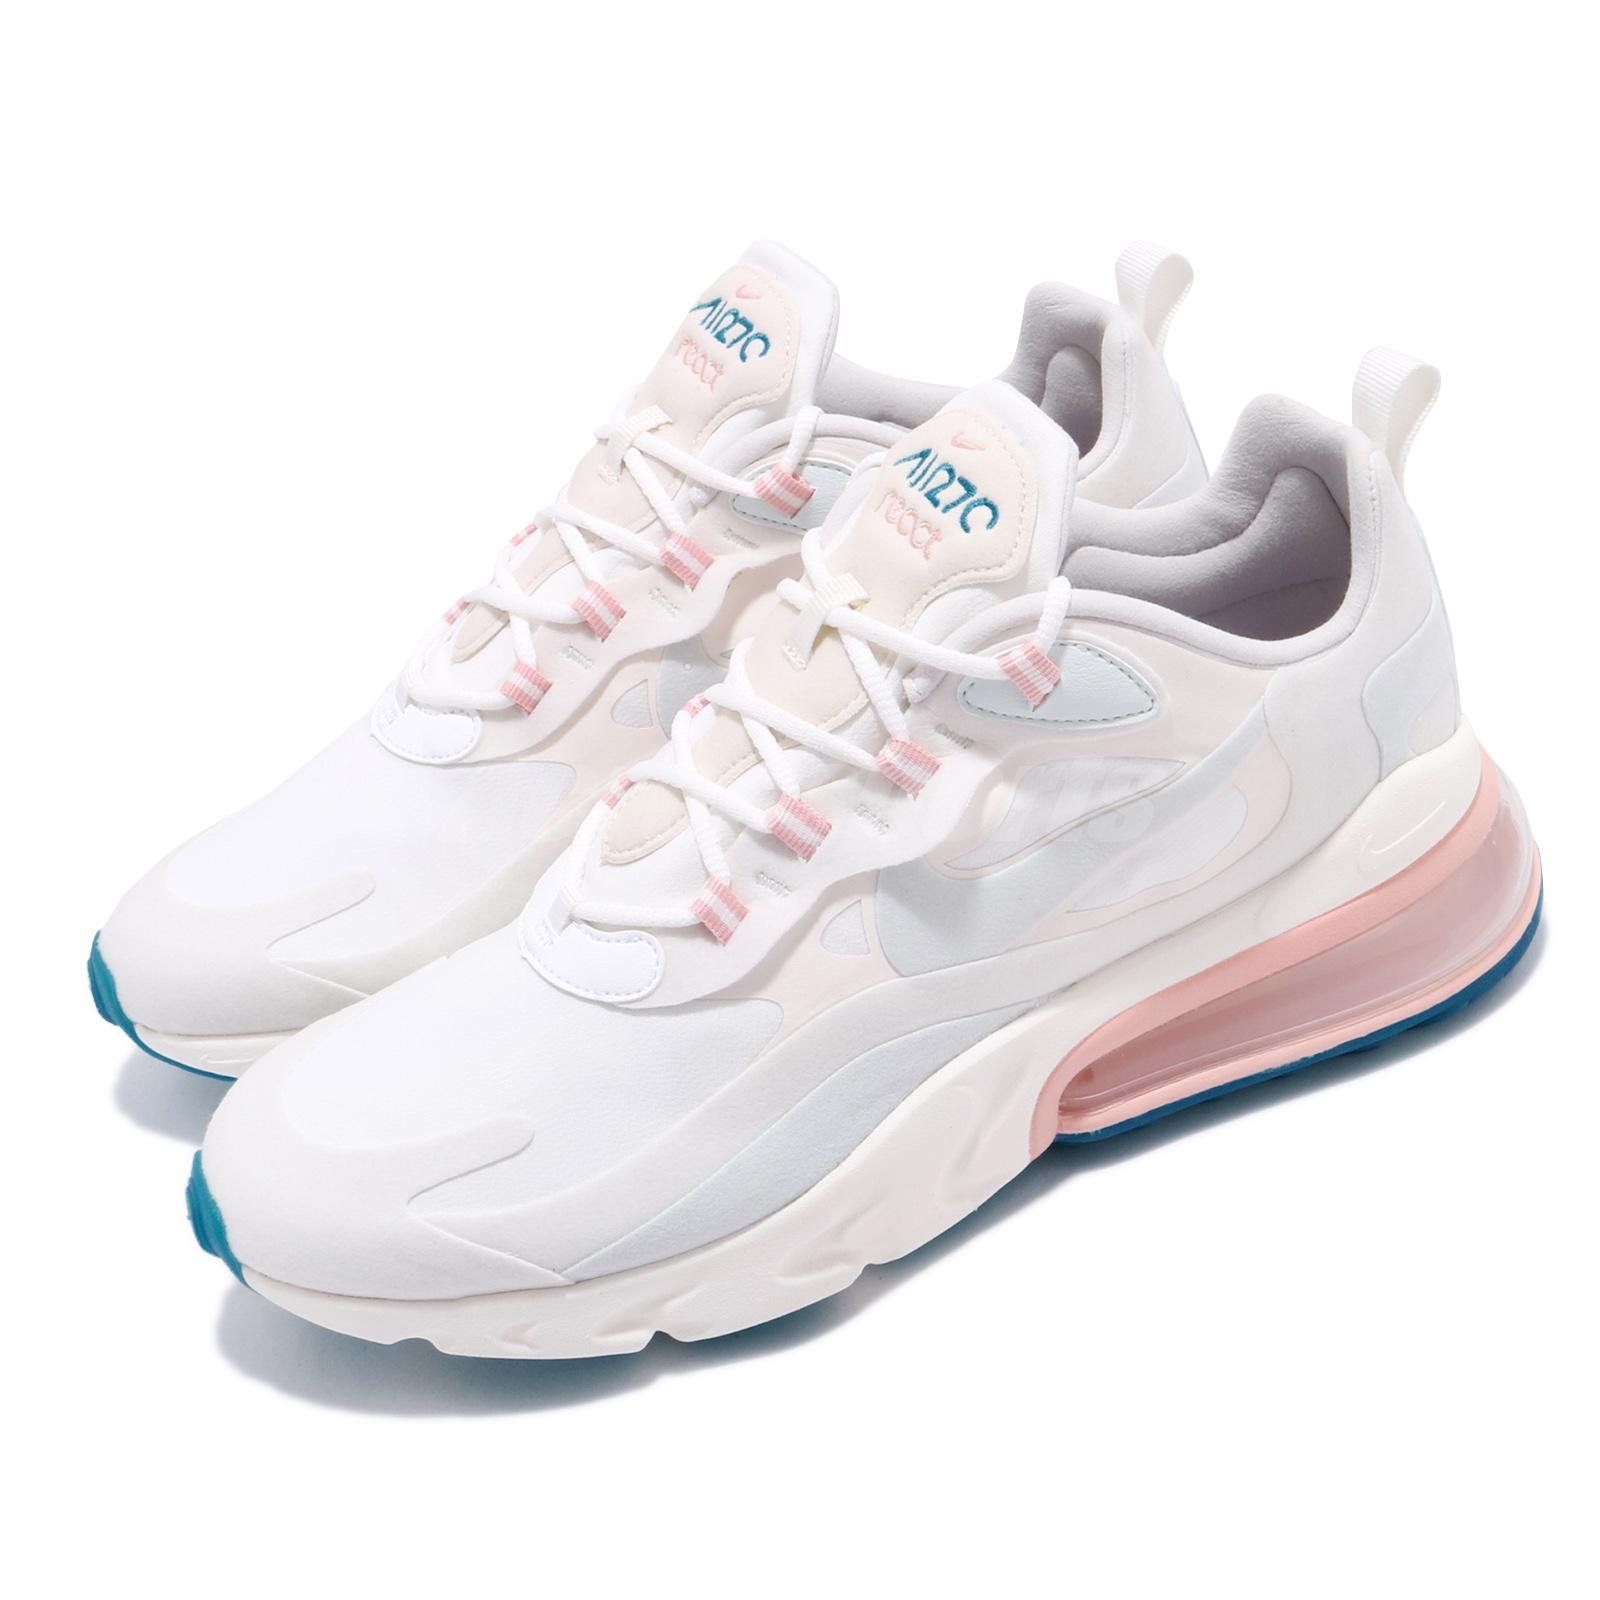 Nike Air Max 270 React Summit White Blue Pink Mens Running Shoes